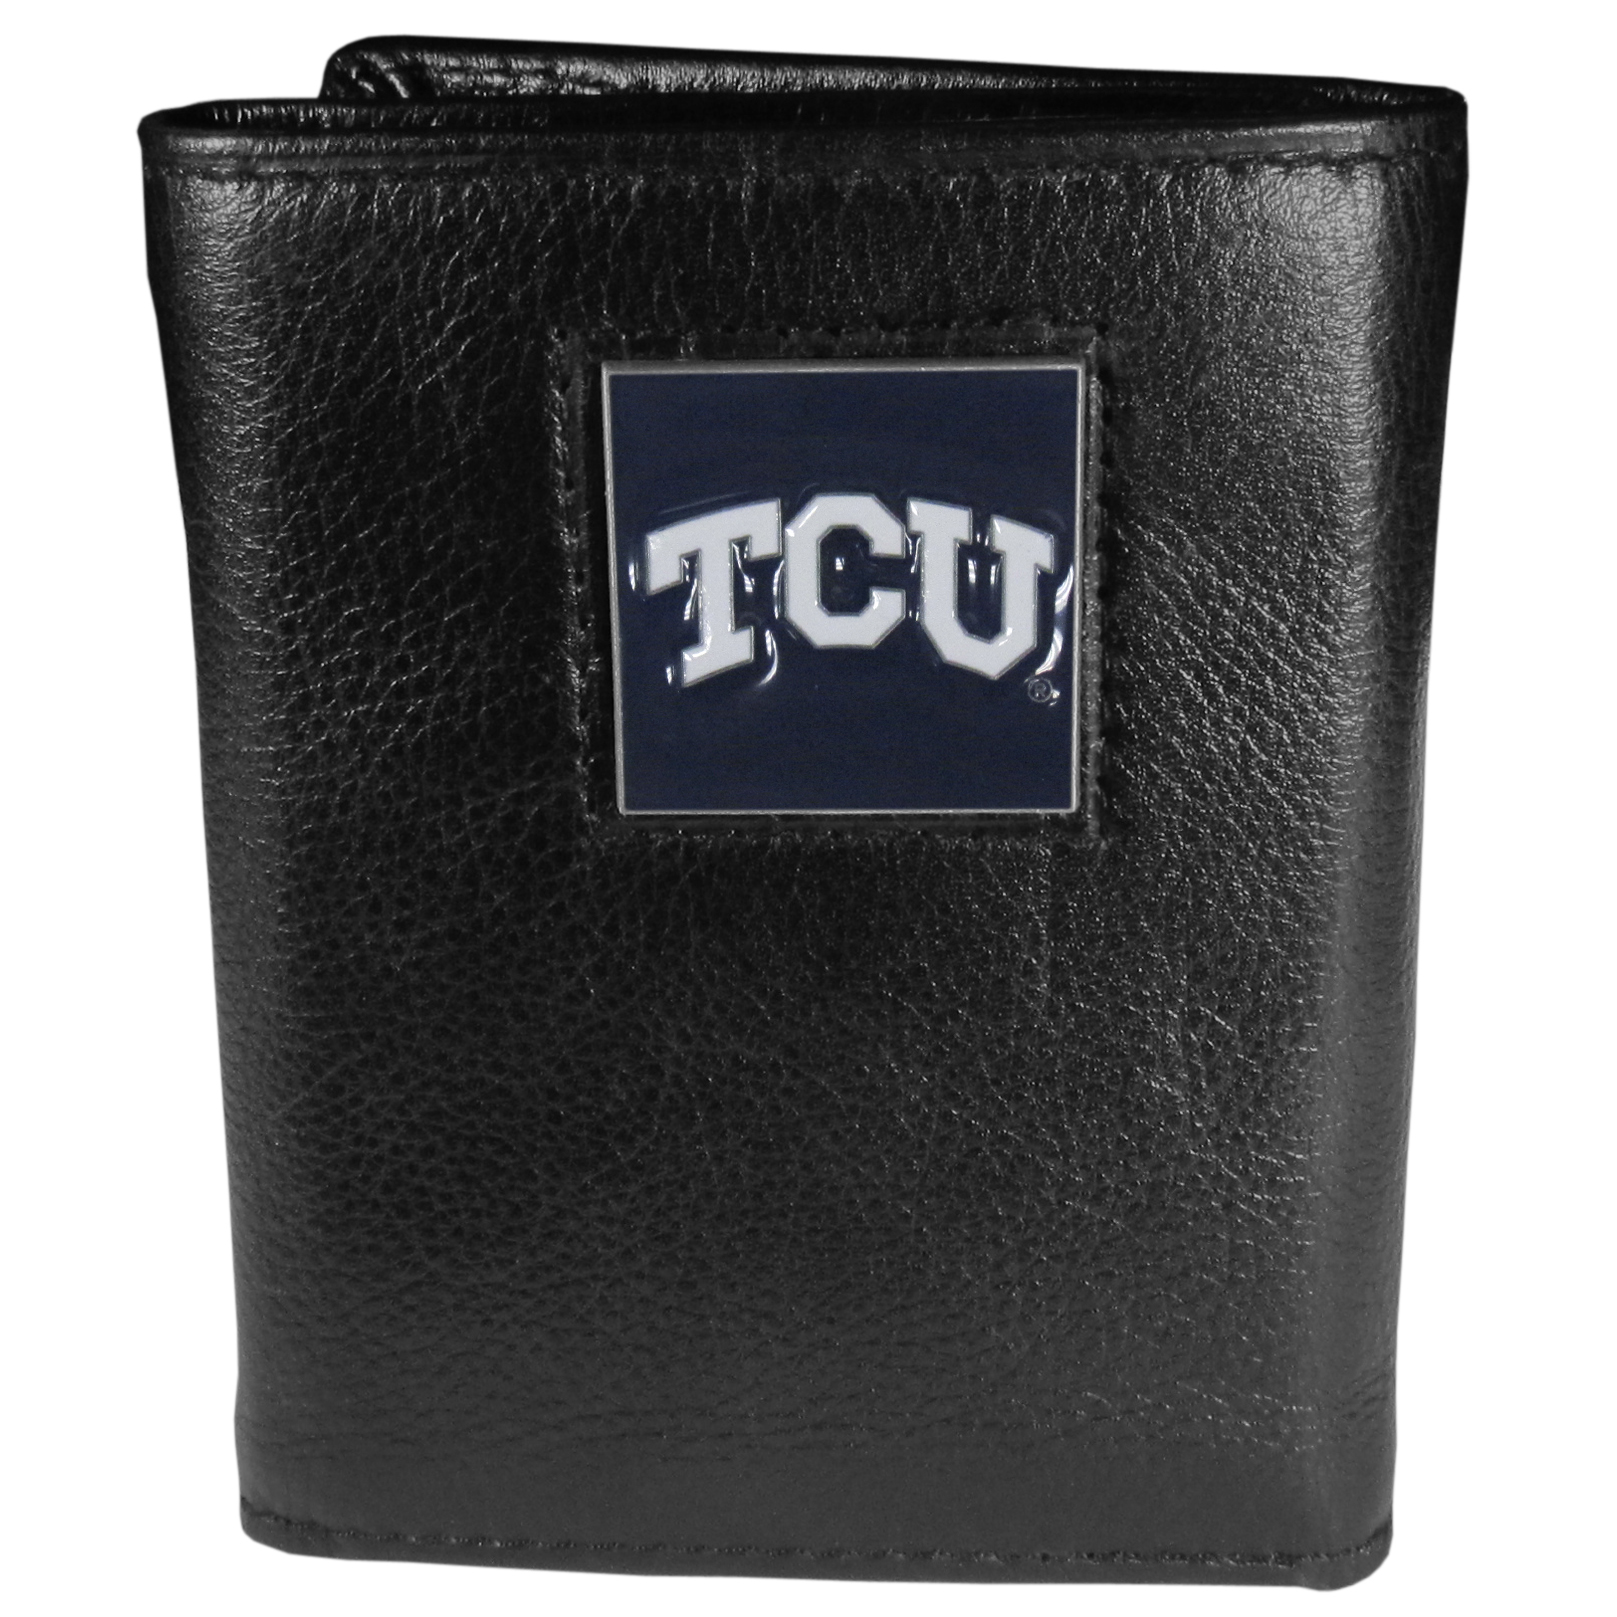 TCU Horned Frogs Deluxe Leather Tri-fold Wallet Packaged in Gift Box - Our officially licensed fine grain leather wallet features numerous card slots, windowed ID slots, removable picture slots and large billfold pockets. This quality wallet has an enameled TCU Horned Frogs emblem on the front of the wallet making it a stylish way to show off your team pride.